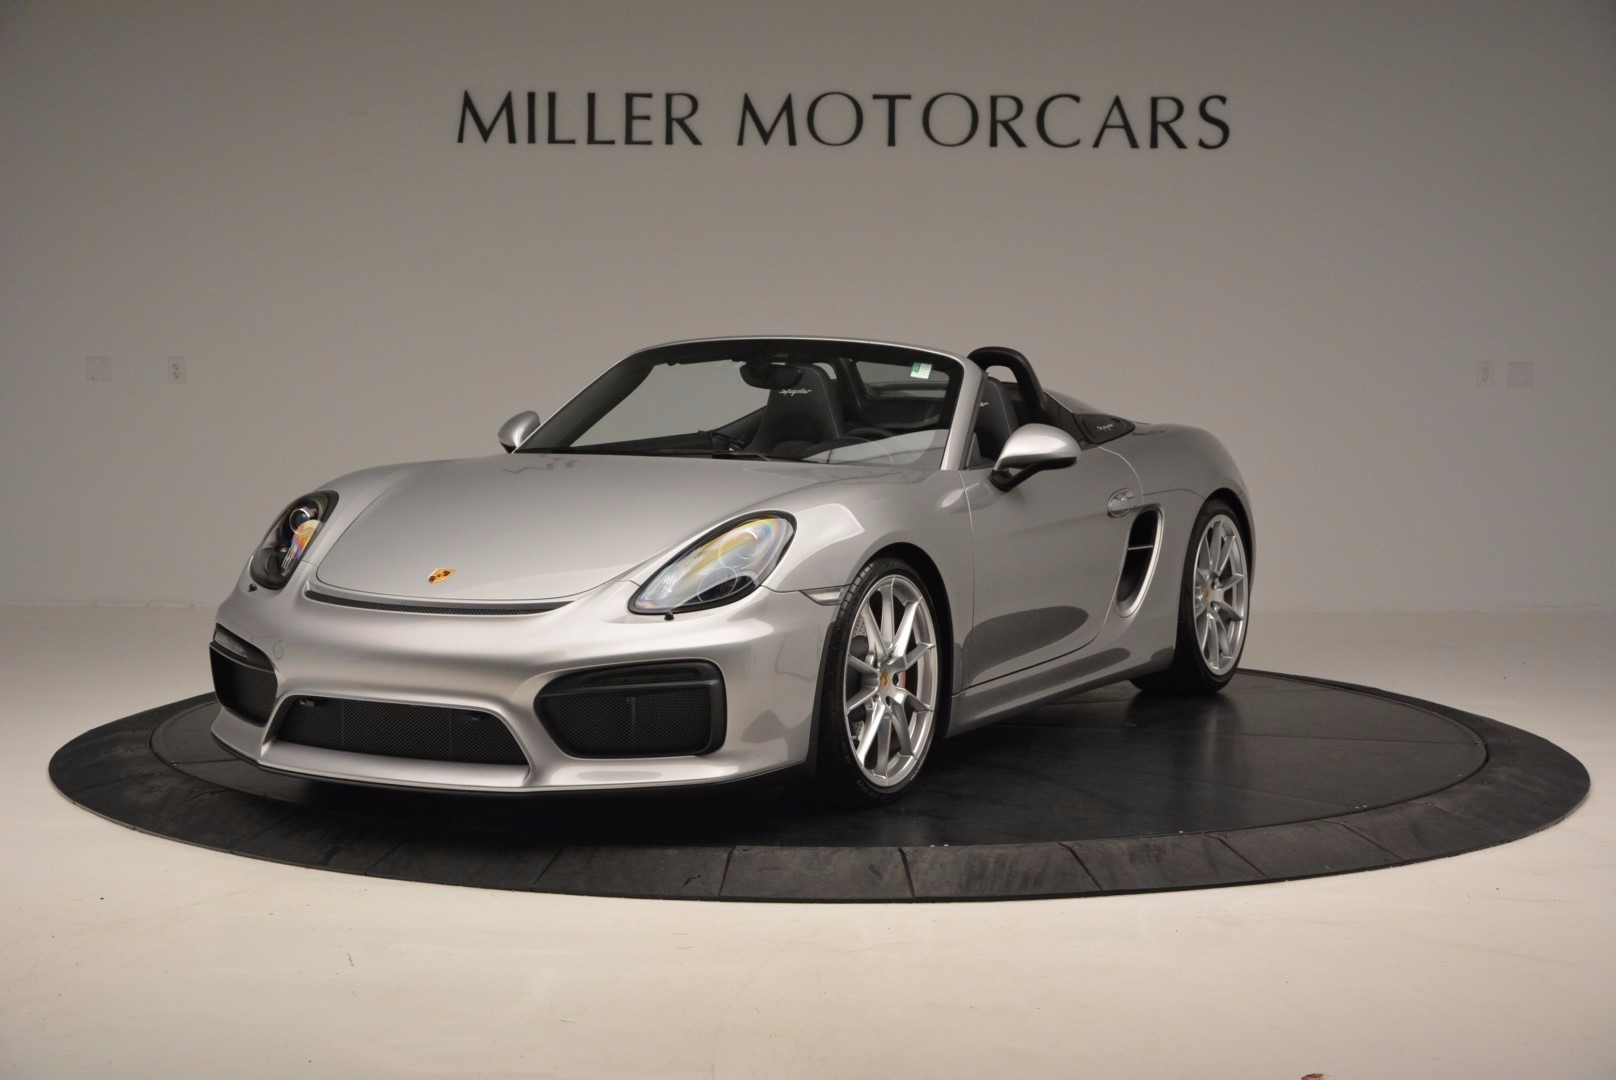 Used 2016 Porsche Boxster Spyder for sale Sold at Aston Martin of Greenwich in Greenwich CT 06830 1